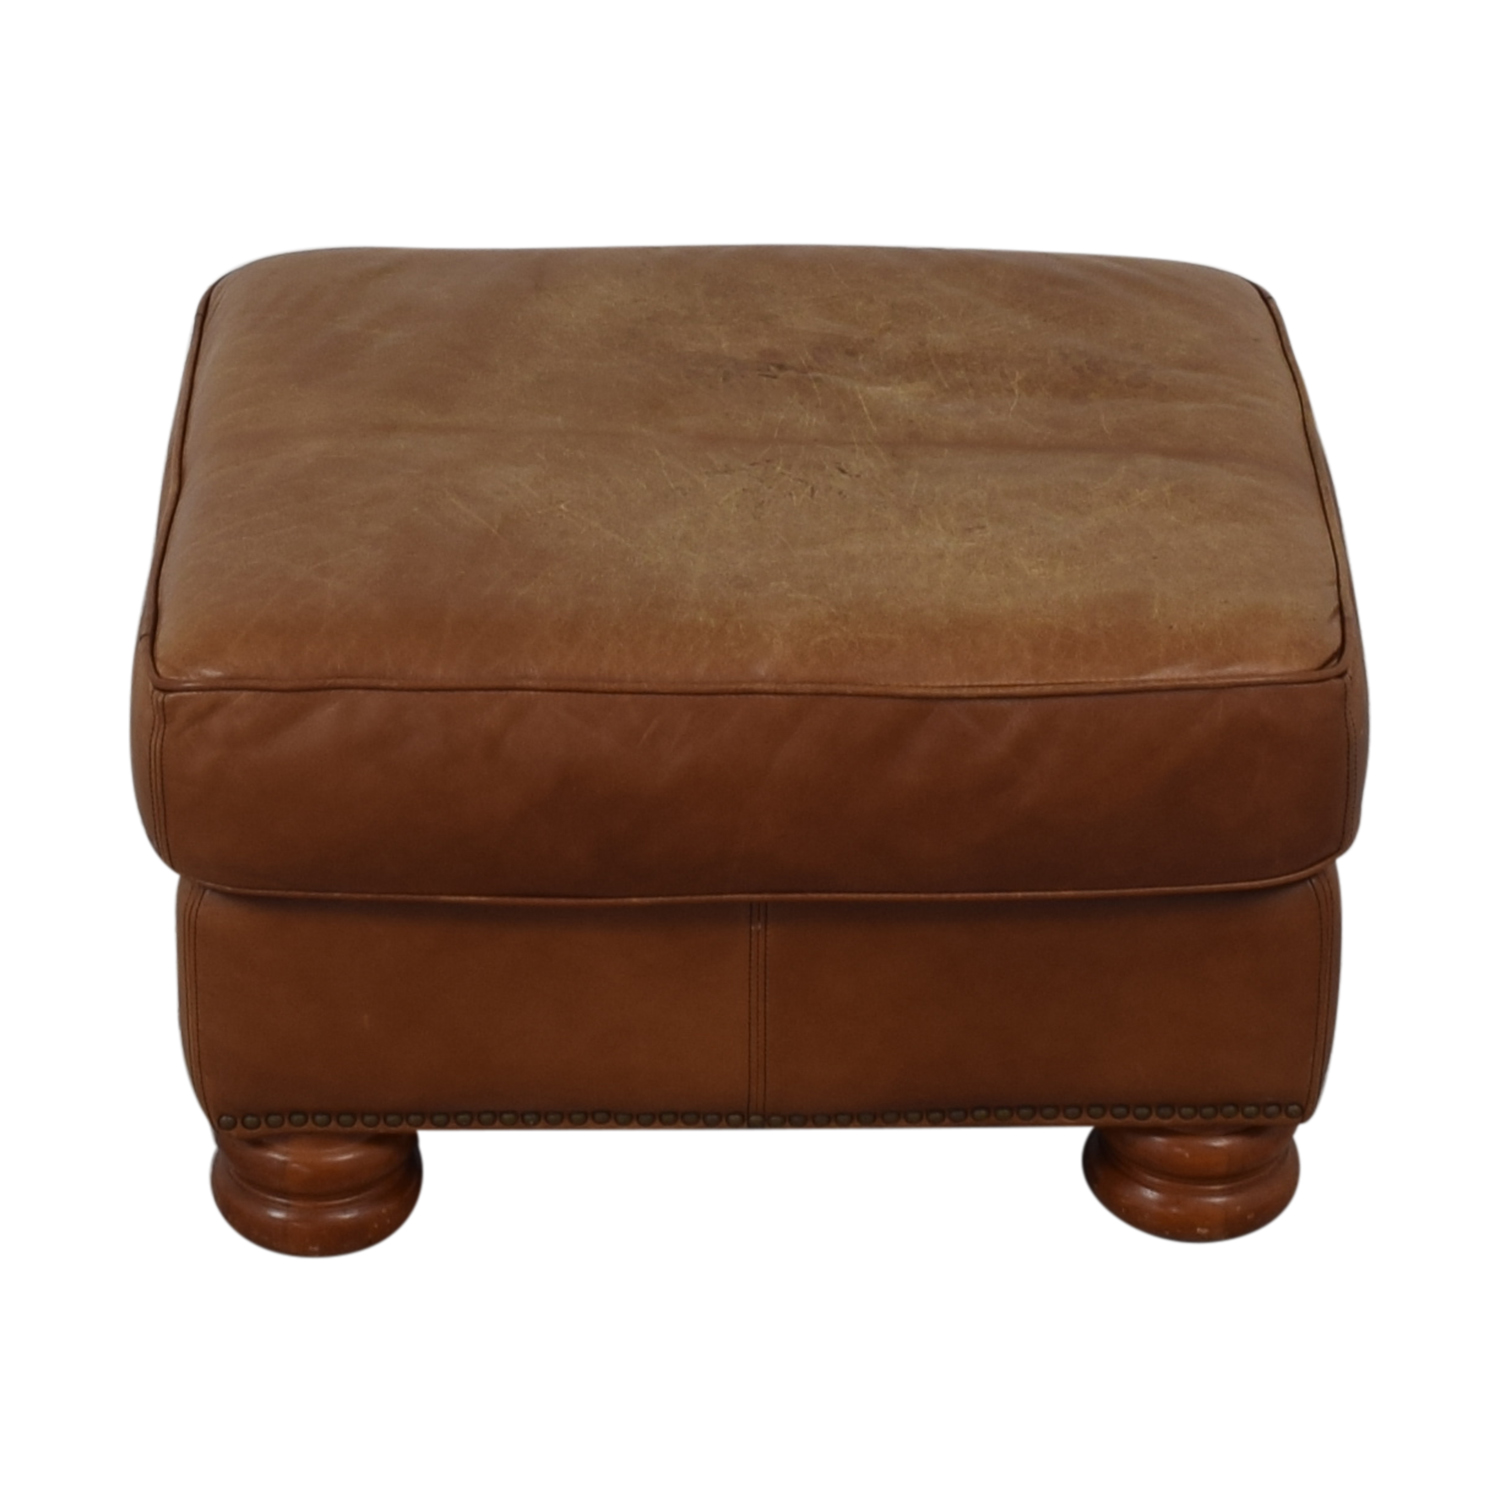 Thomasville Thomasville Brown Leather Ottoman brown